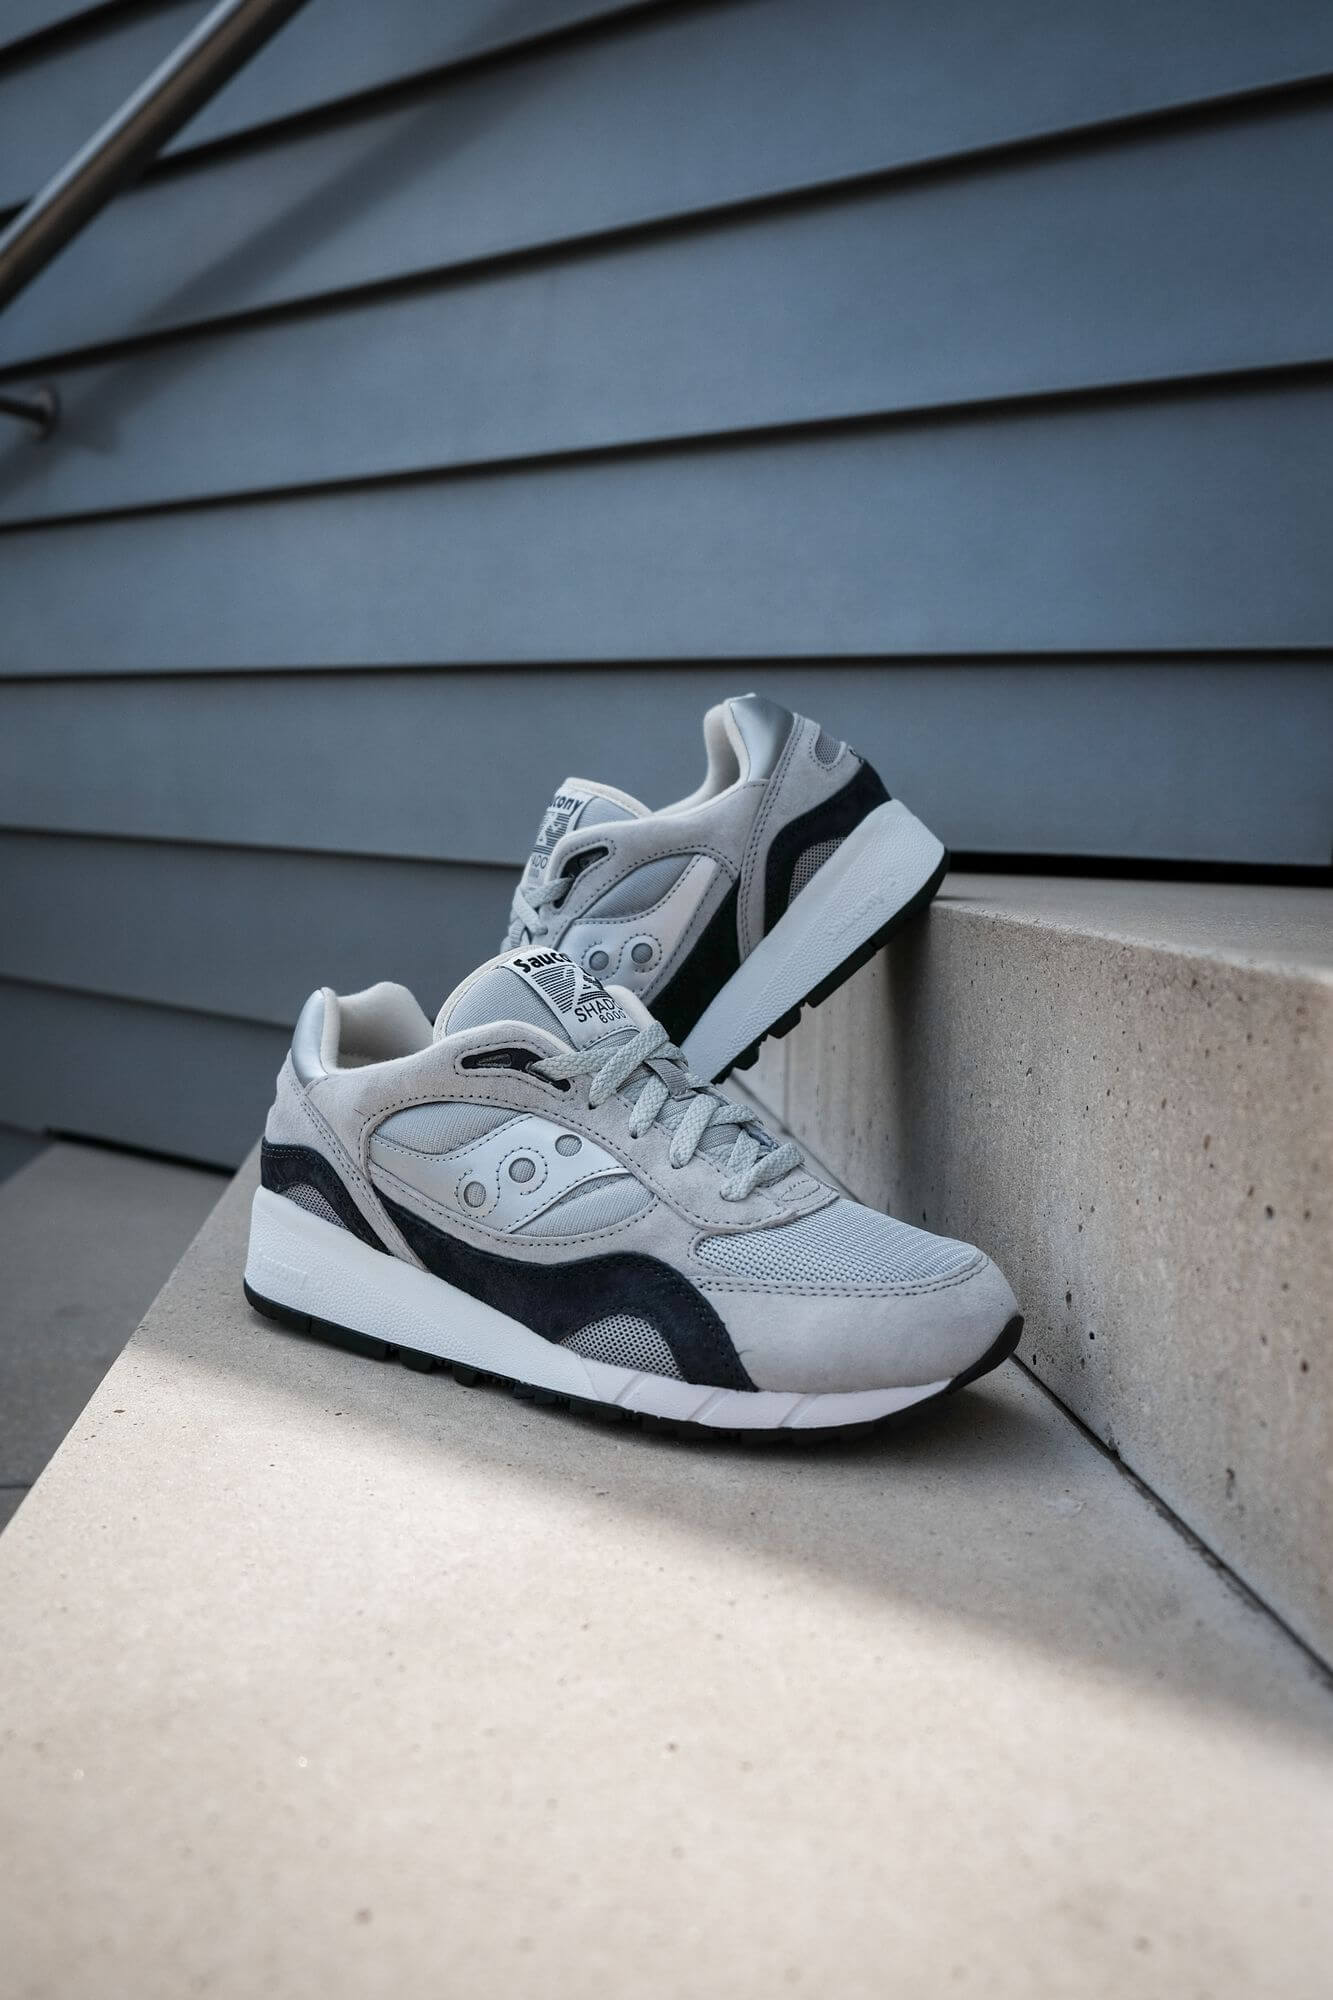 photo on staircase - Saucony Originals Shadow 6000 - silver/grey - S70441-7